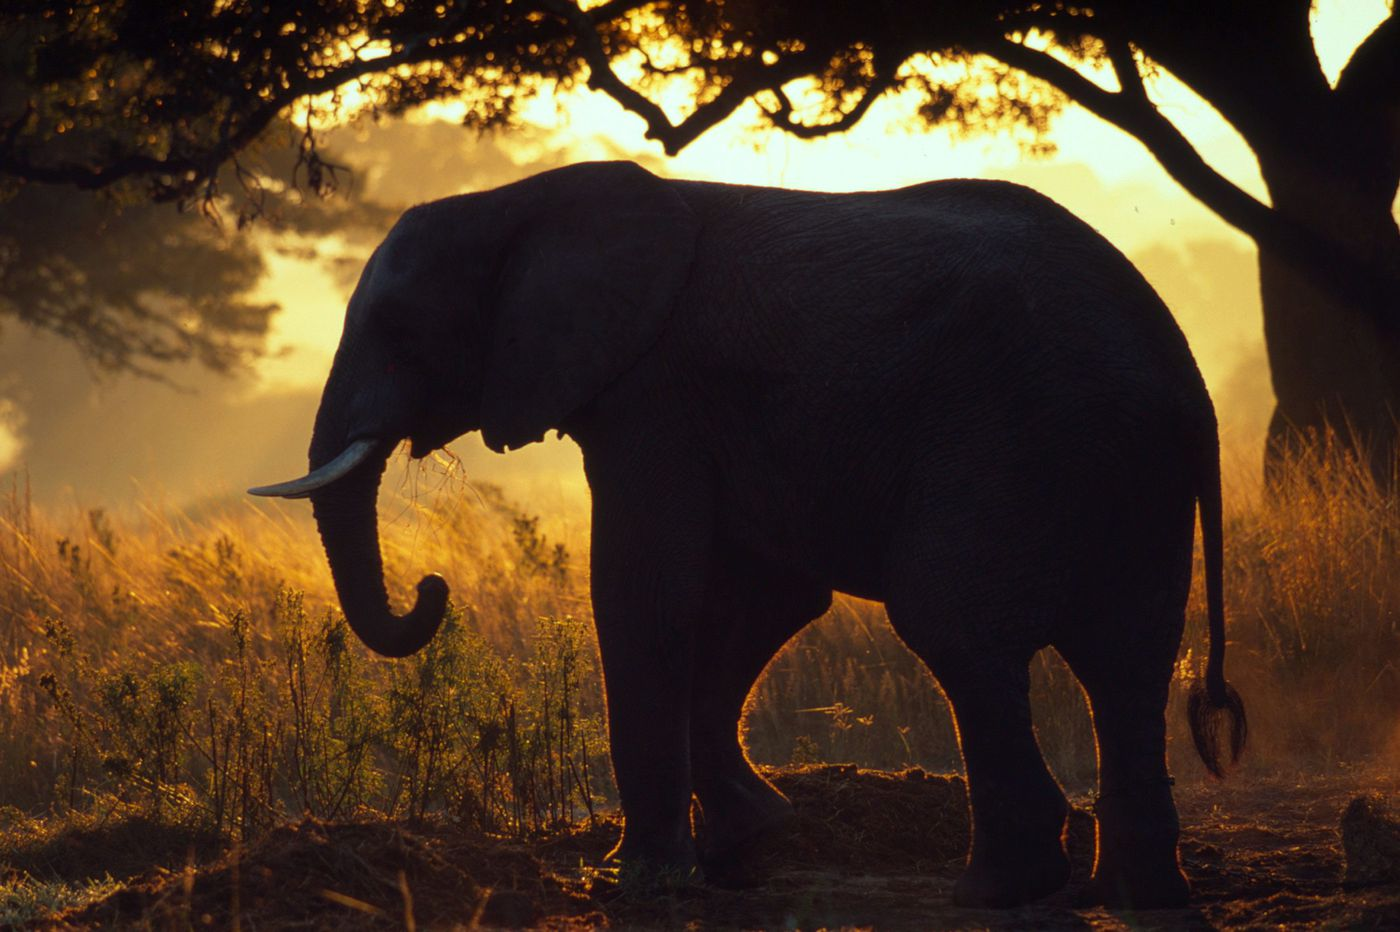 Wildlife declined by 60 percent globally in 40 years, says World Wildlife Fund